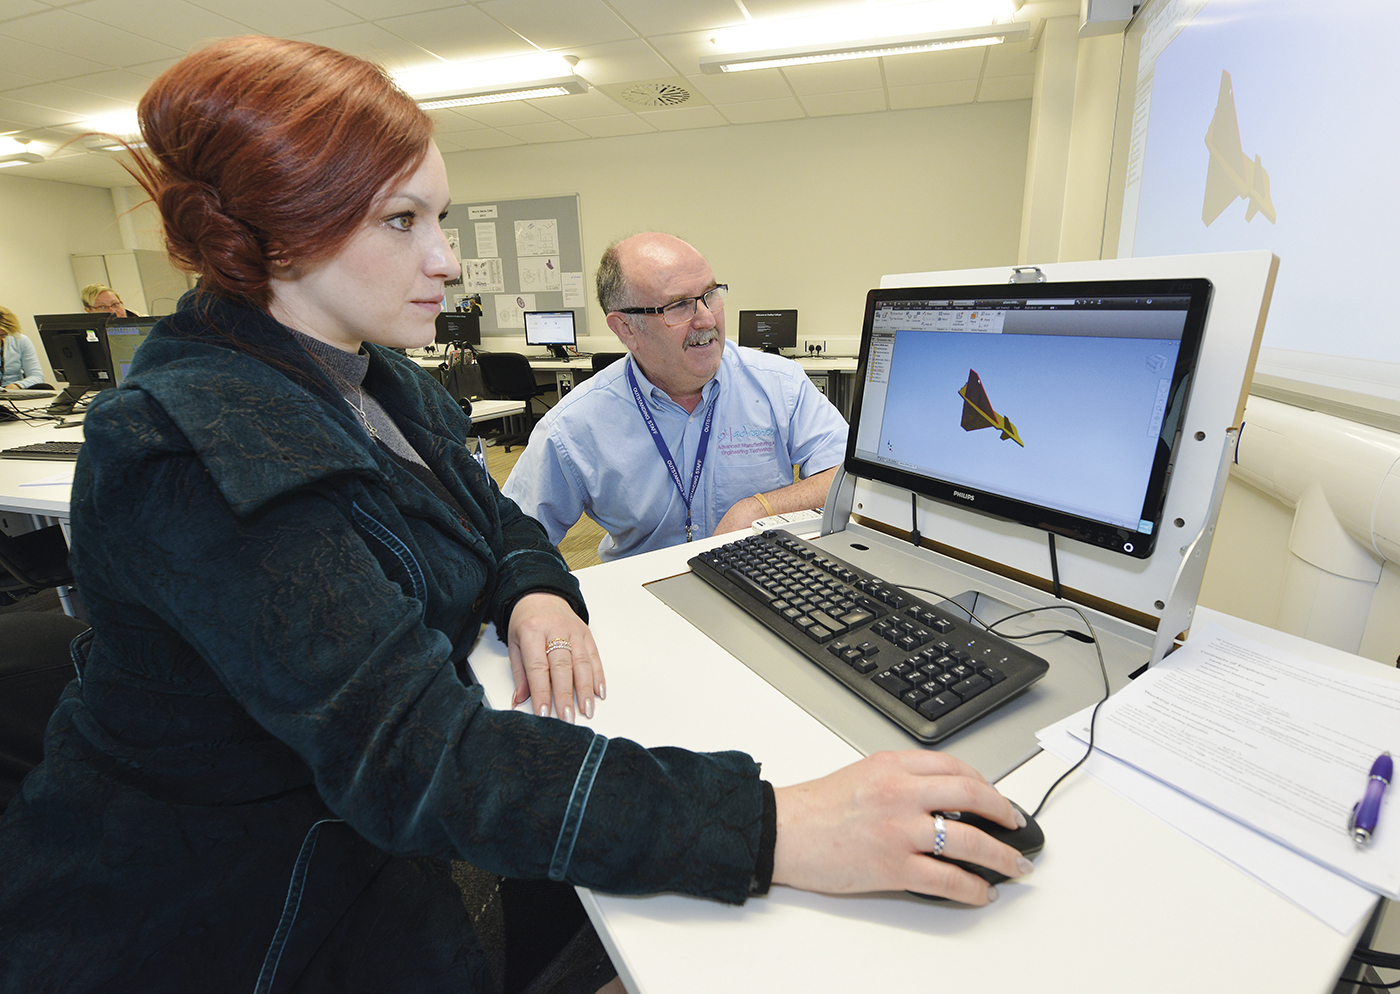 Student and teacher rendering a 3D model on computer in classroom